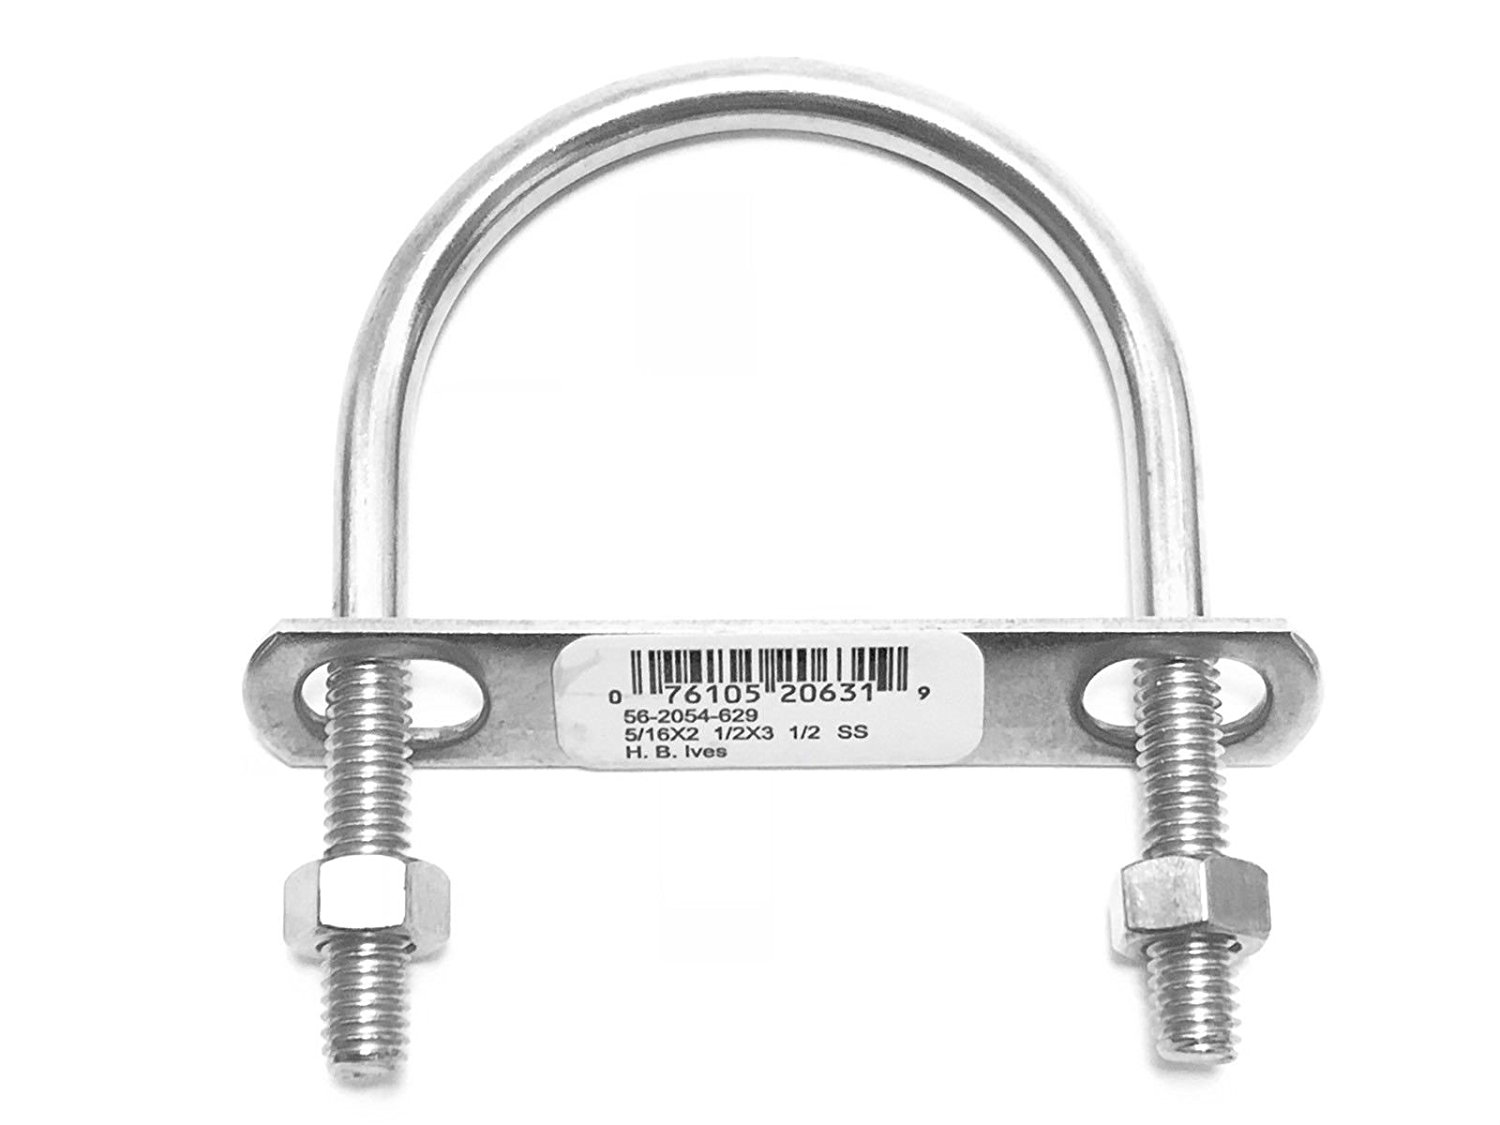 """Stainless Steel Ubolts 5/16"""" inch x 2 1/2"""" inches x 3 1/2 inches 2"""" Pipe Clamp U-Bolts w/ Nuts 3 1/2 inch 10 Pack"""